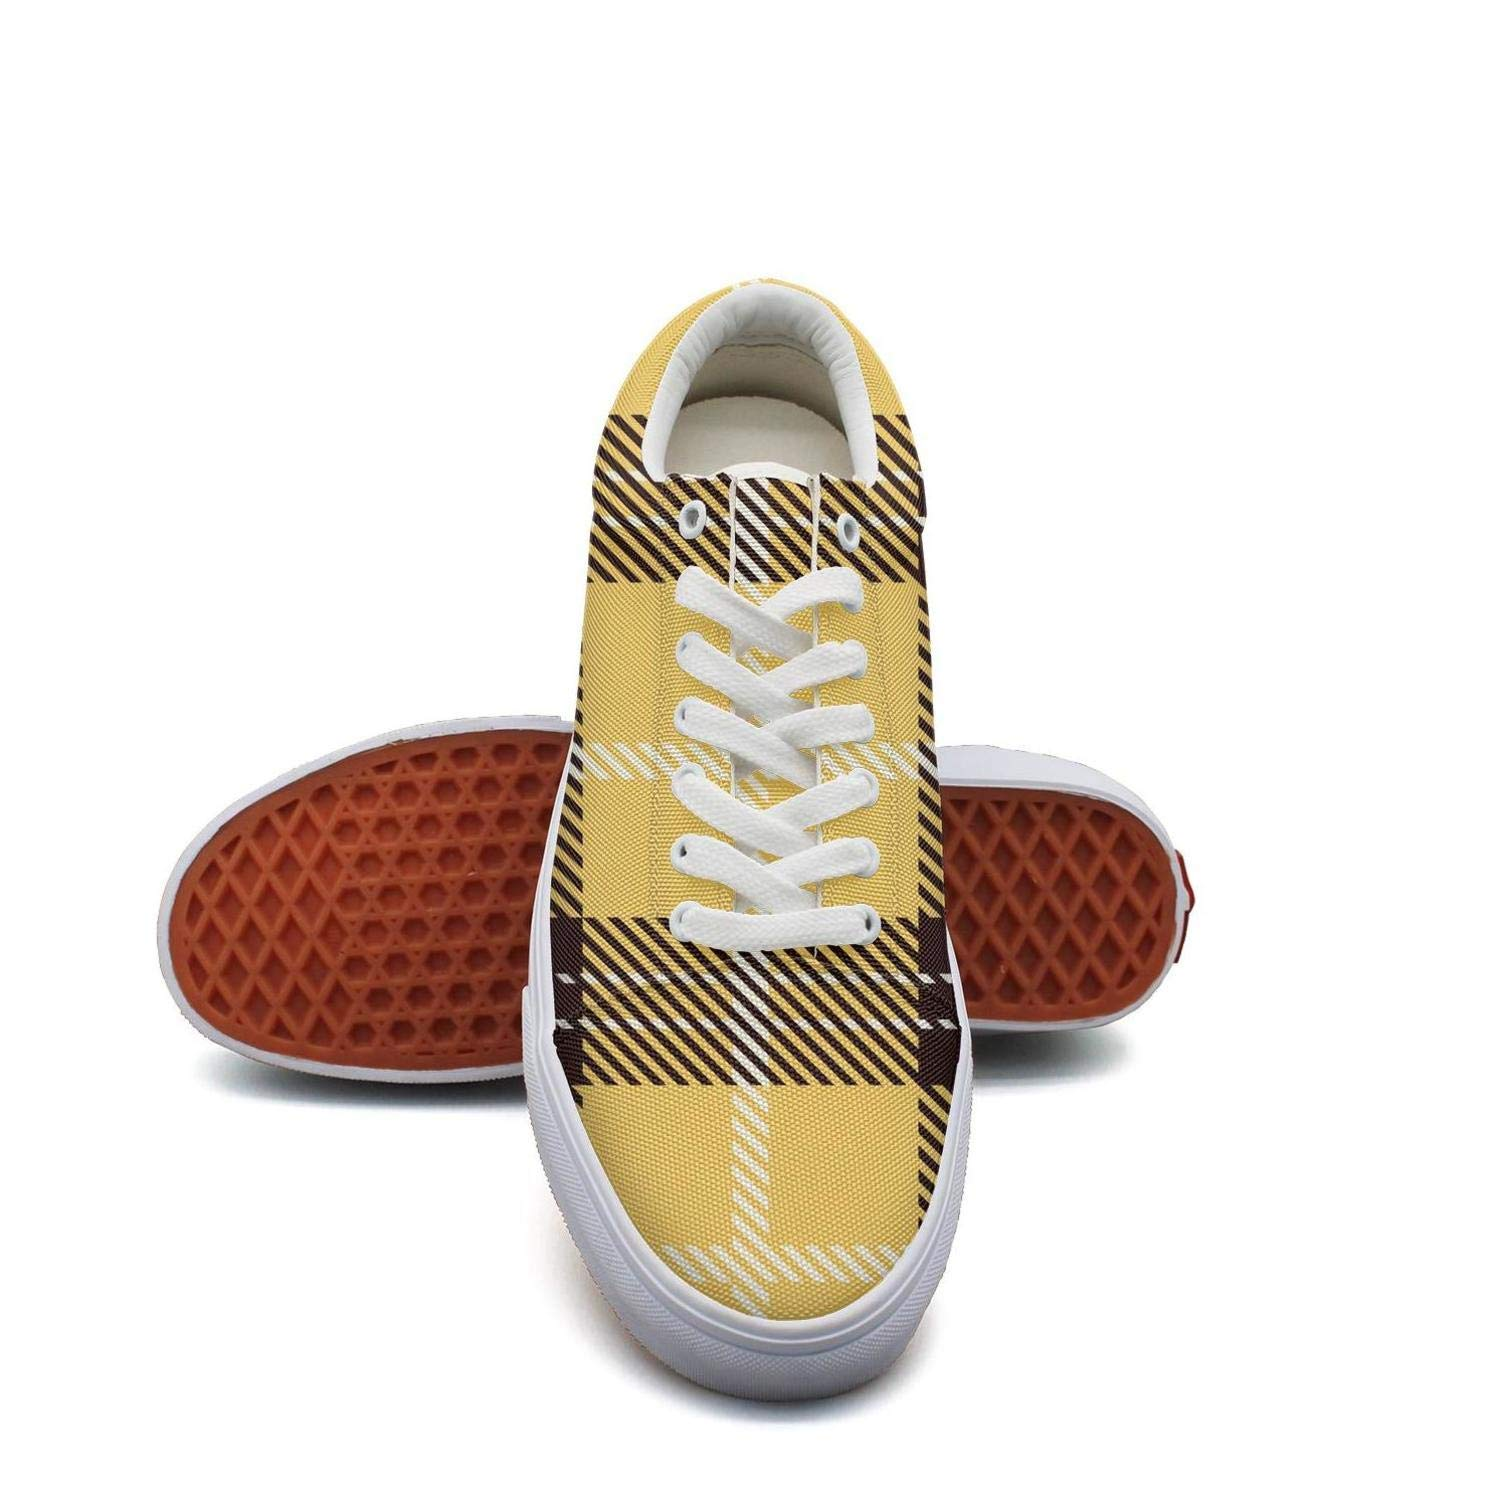 Yellow Brown British 6.5 B(M) US KSOWE3KD Woman Mens' Microfiber Flat shoes White Lattice Red Checkerboard Print Unisex Cushion shoes